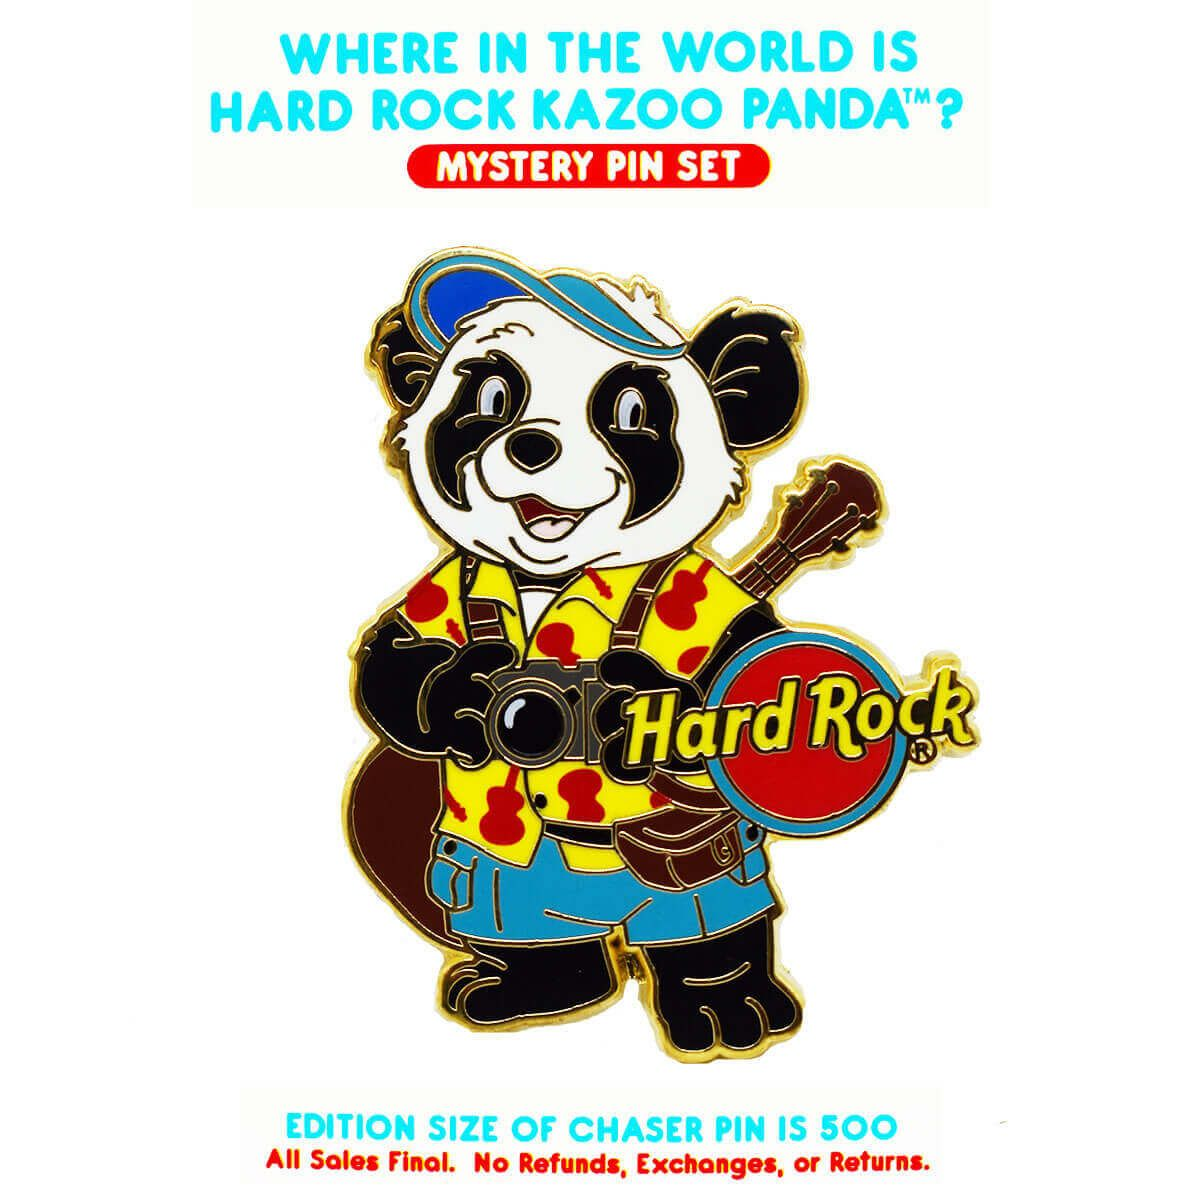 Kazoo The Panda Mystery Pin